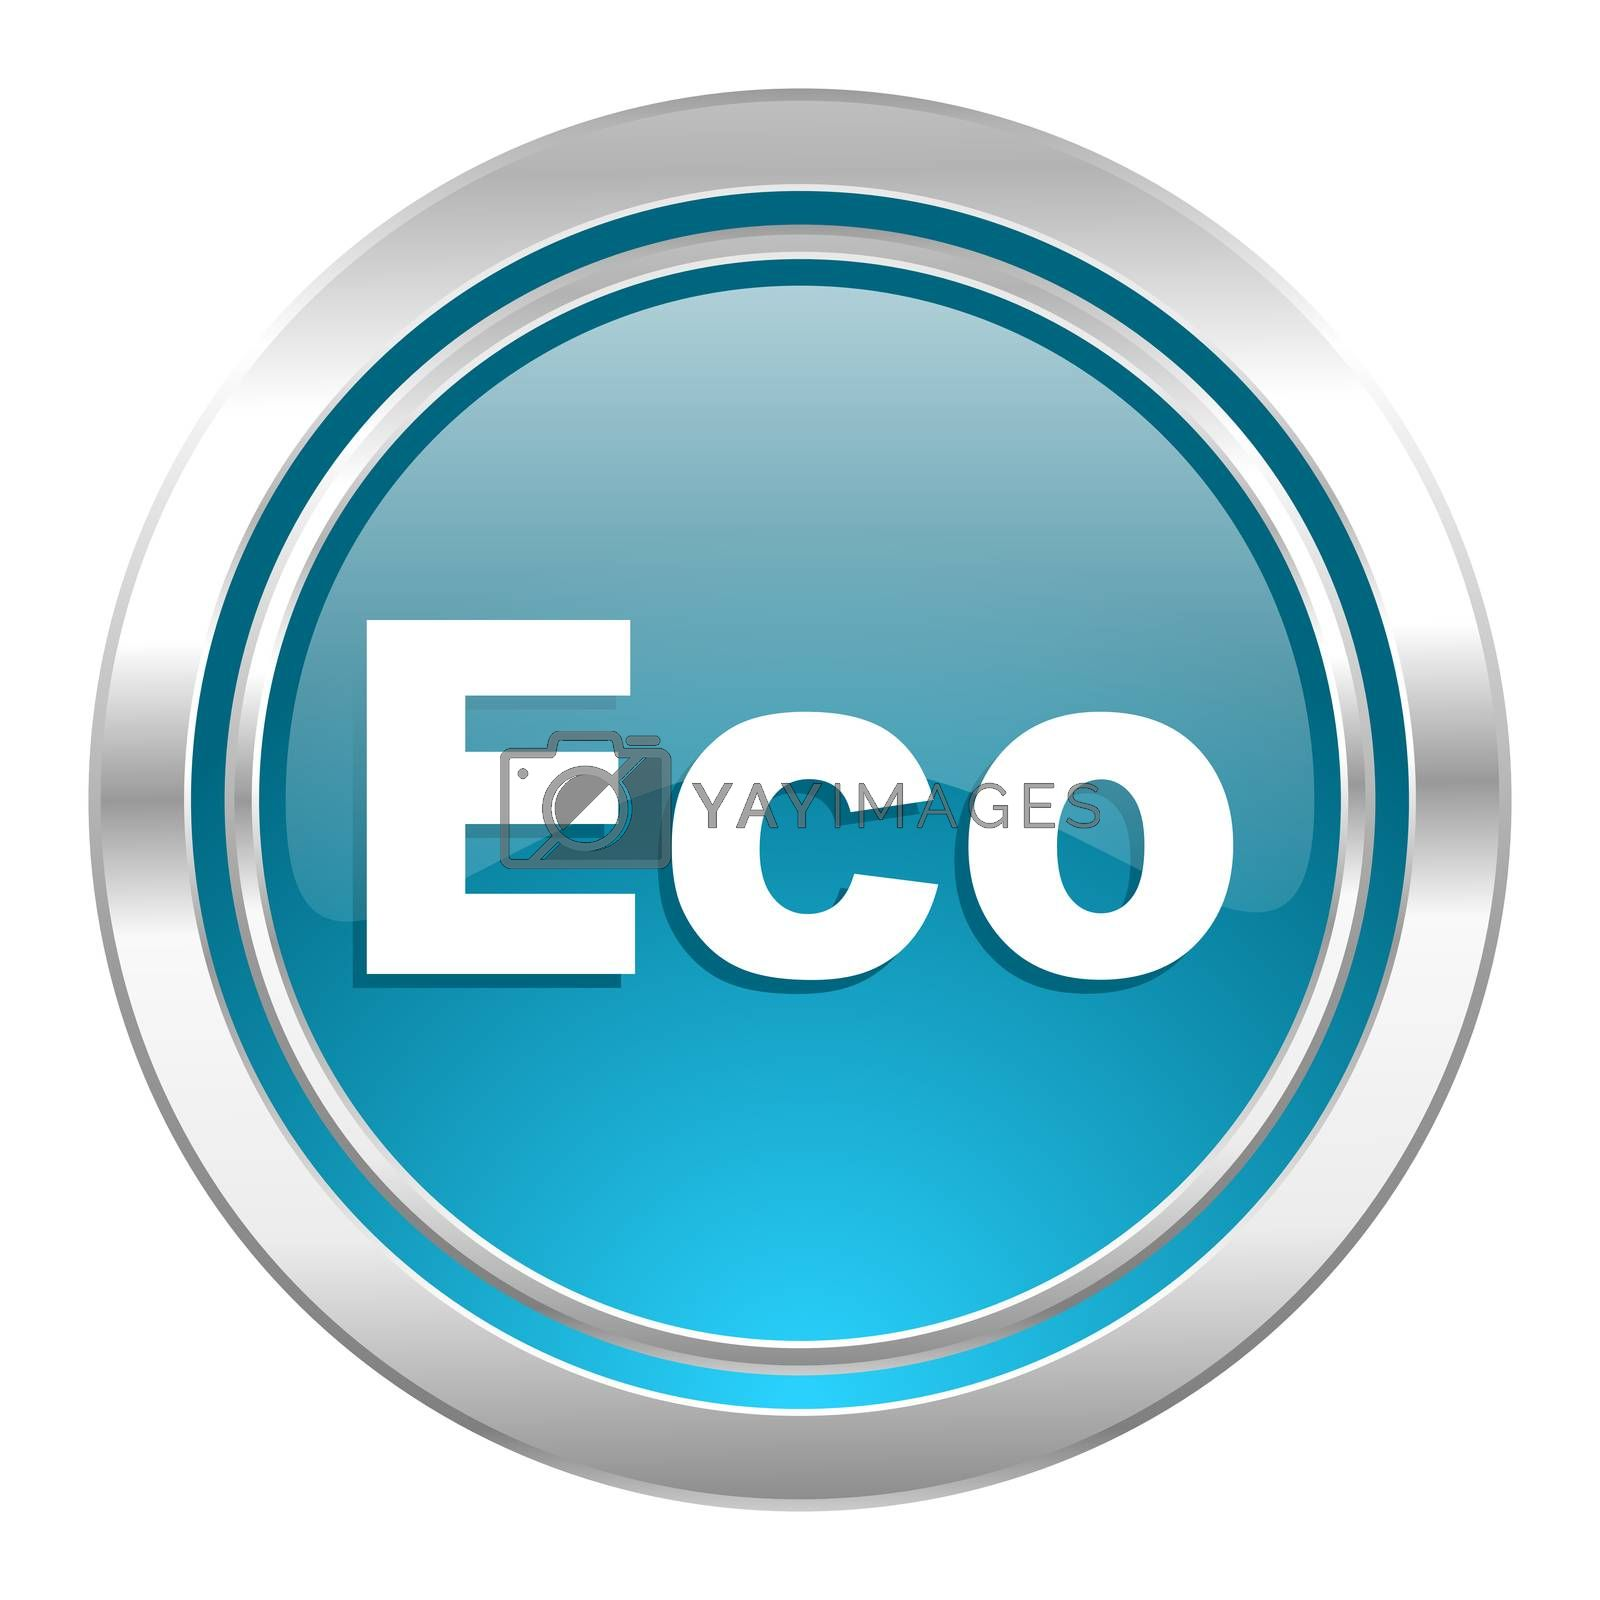 eco icon, ecological sign